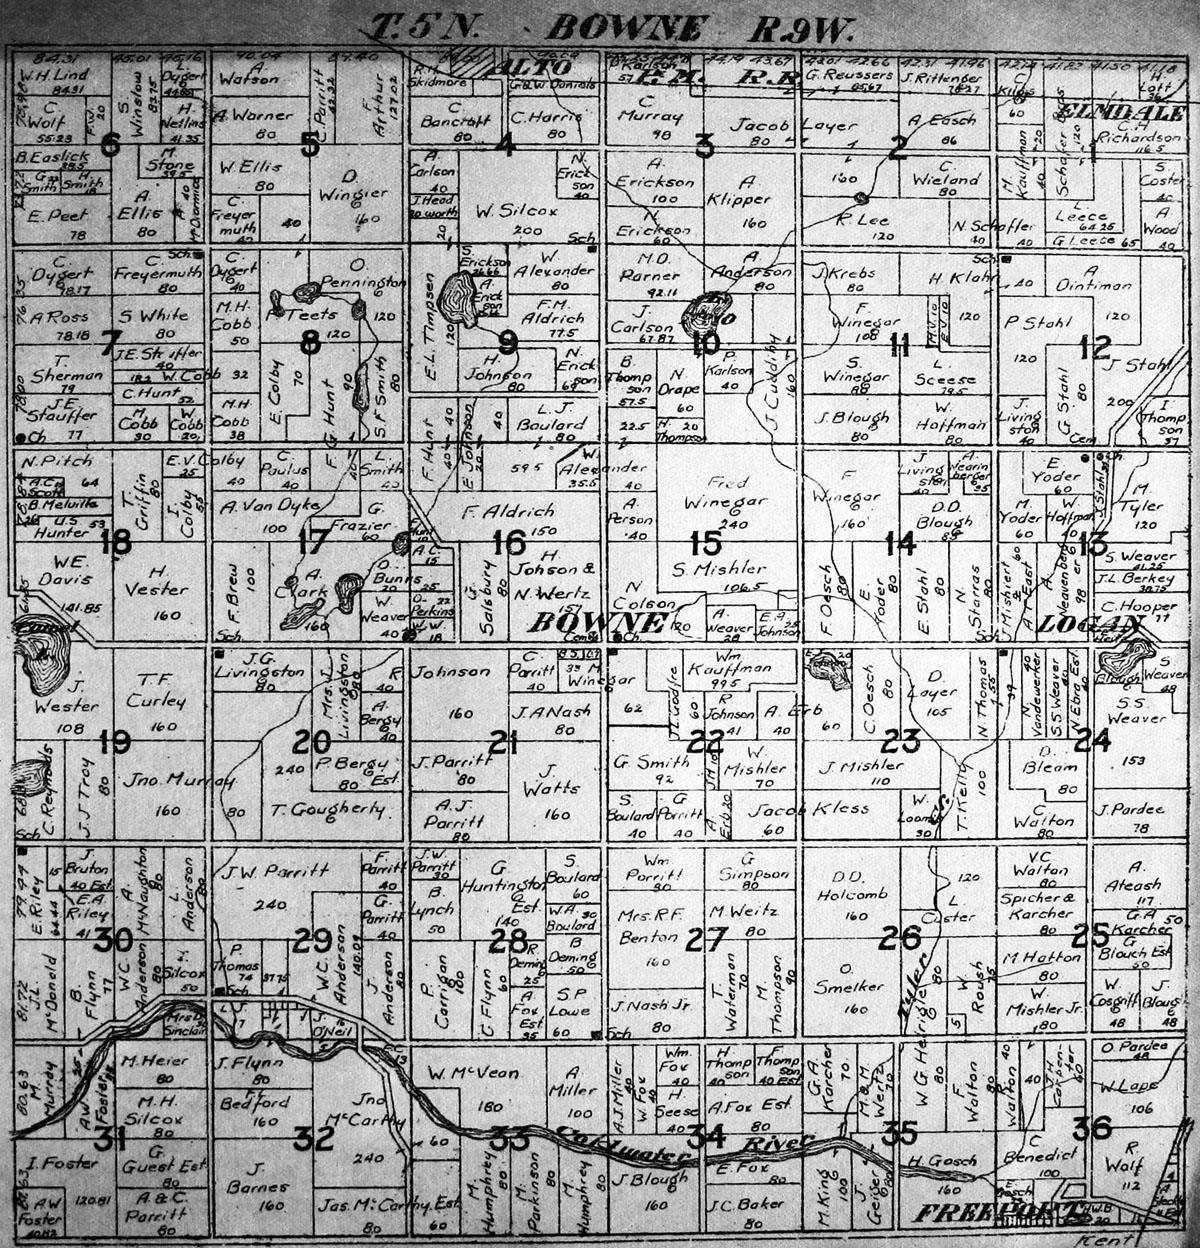 Plat Maps in Bowne Twp., Kent Co., Michigan Kent County Plat Map on kent county land, michigan county and township map, crawford county mo map, kent county street map, kent county michigan map, ottawa county street map, kent county gis map, kent county plat book, kent county plot map, kent county road map, new kent county va map, kent county line map, kent county parcel search, kent county parcel map, mn county map, grand rapids michigan county map, kent county property map, kent county flood map, kent county topographic map, north carolina county map,